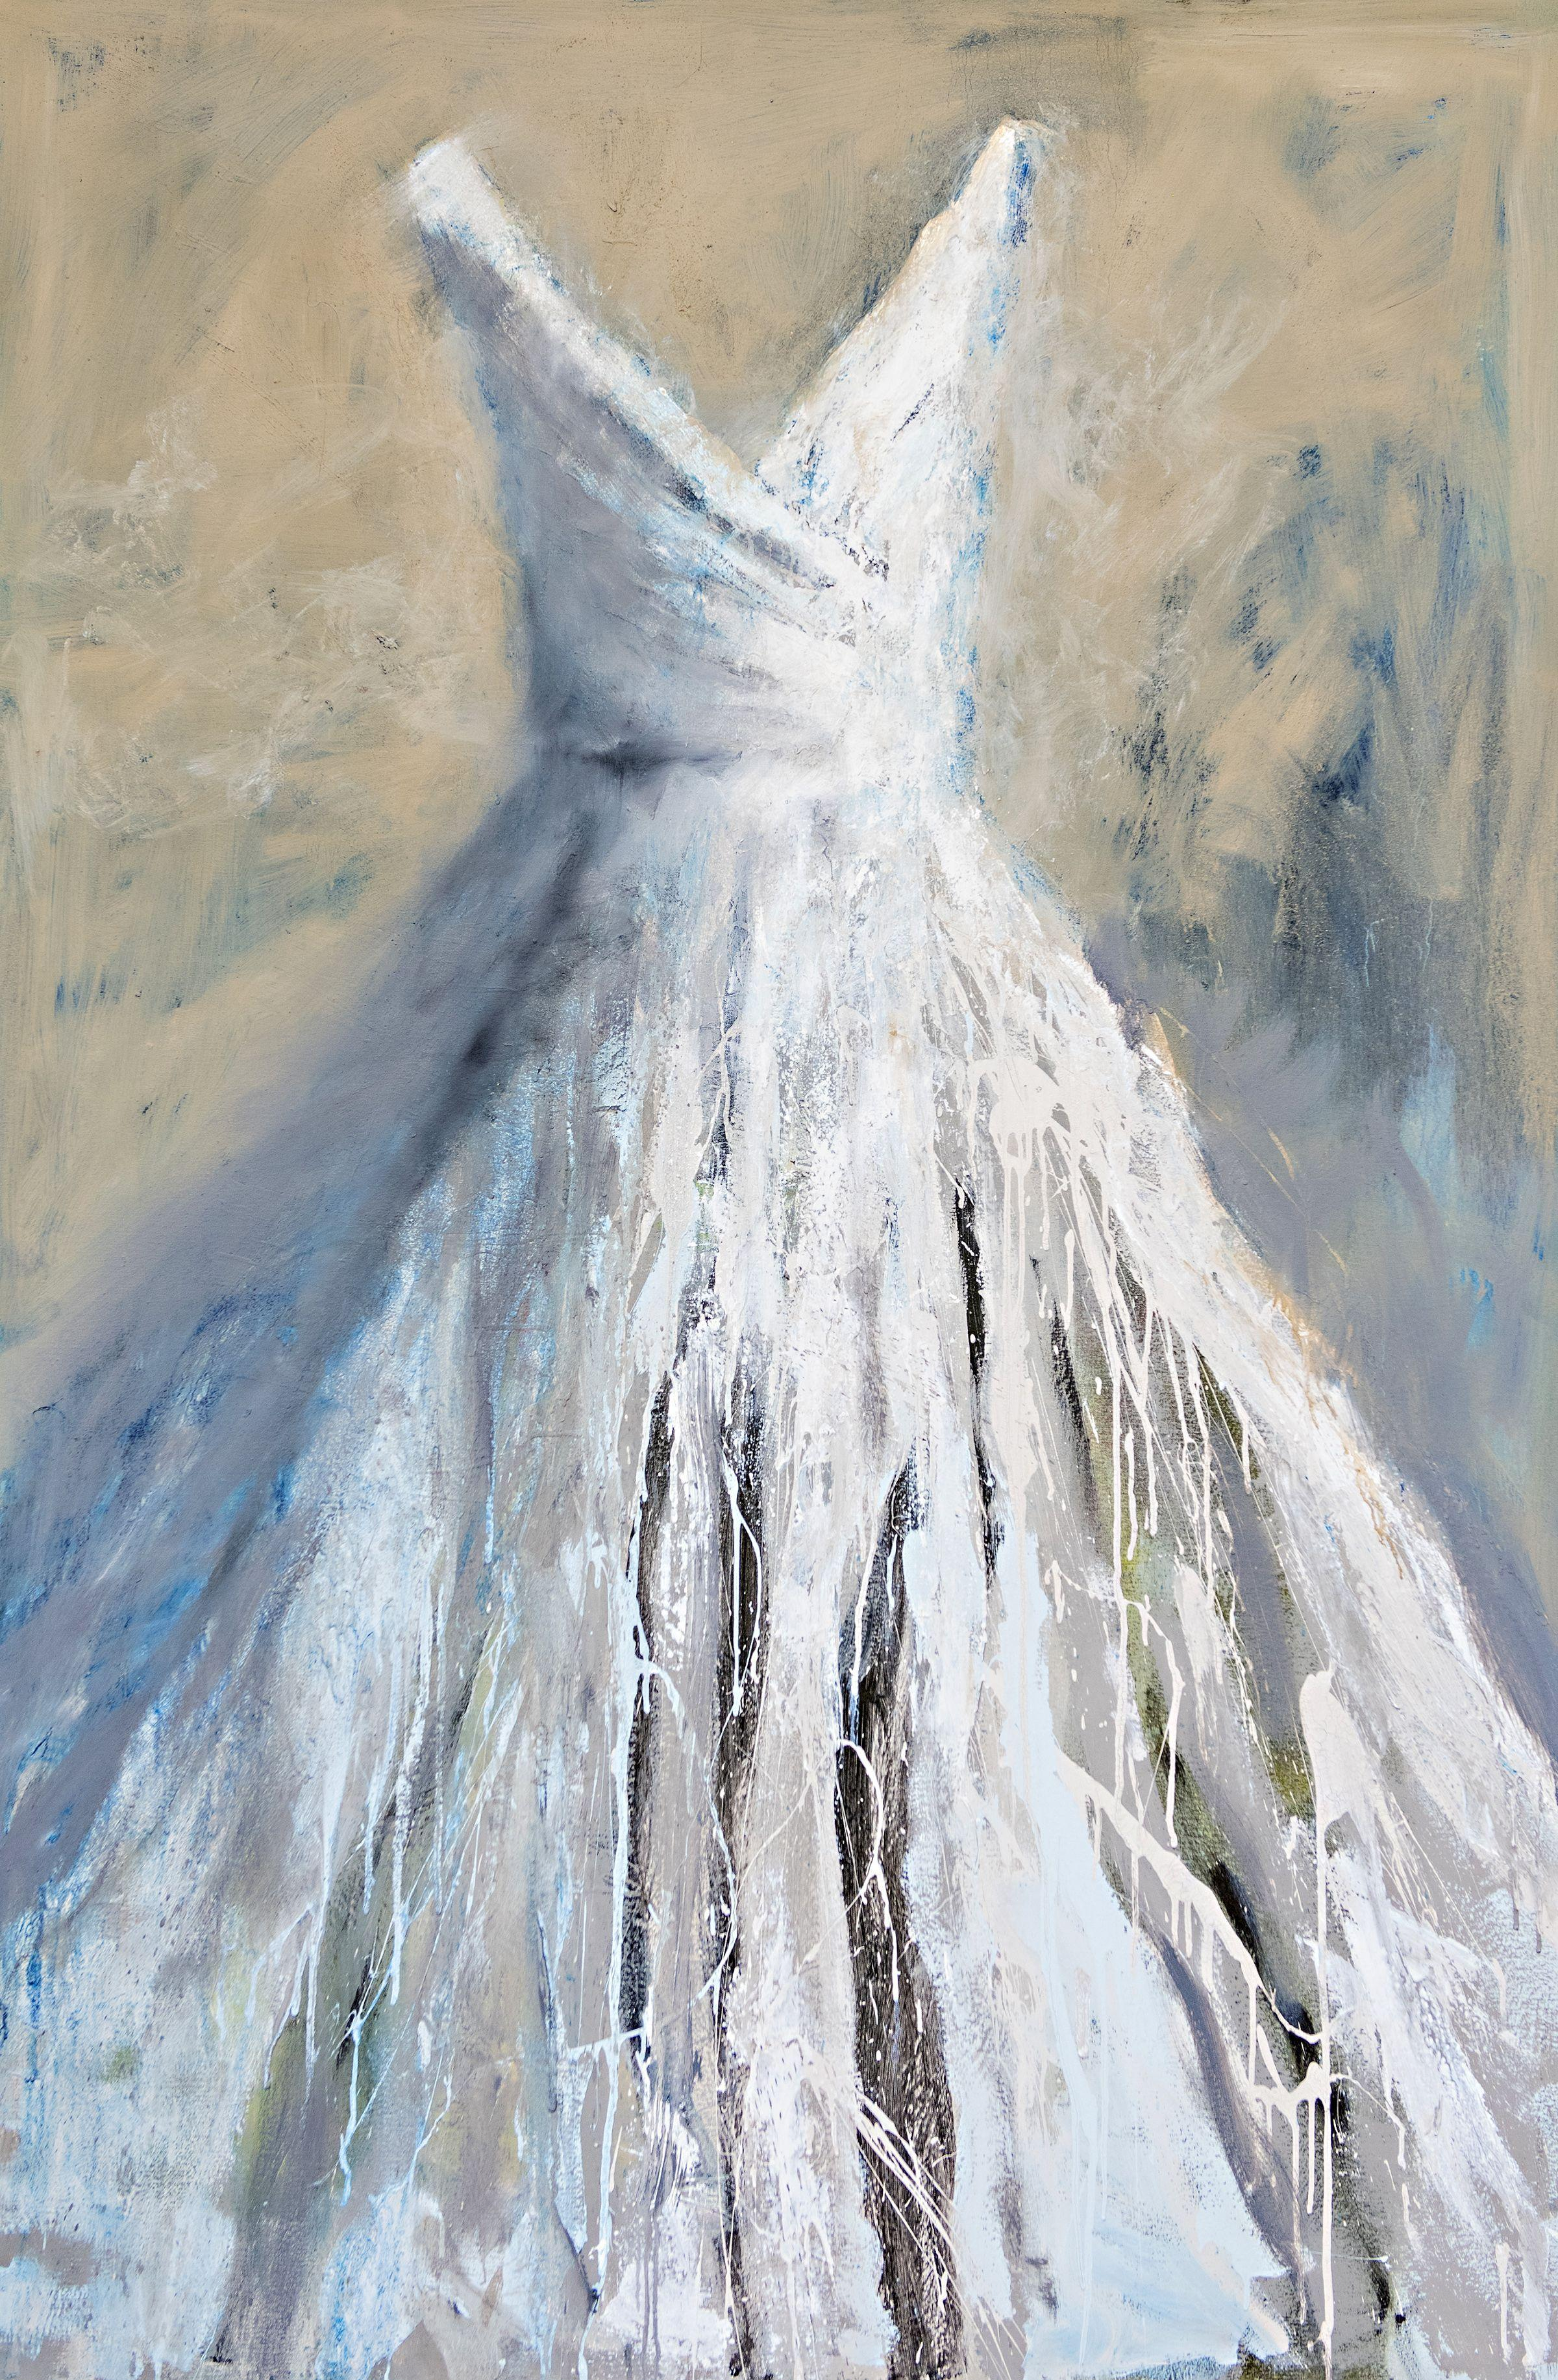 Dreaming by Carylon Killebrew Large Contemporary Gown Oil on Canvas